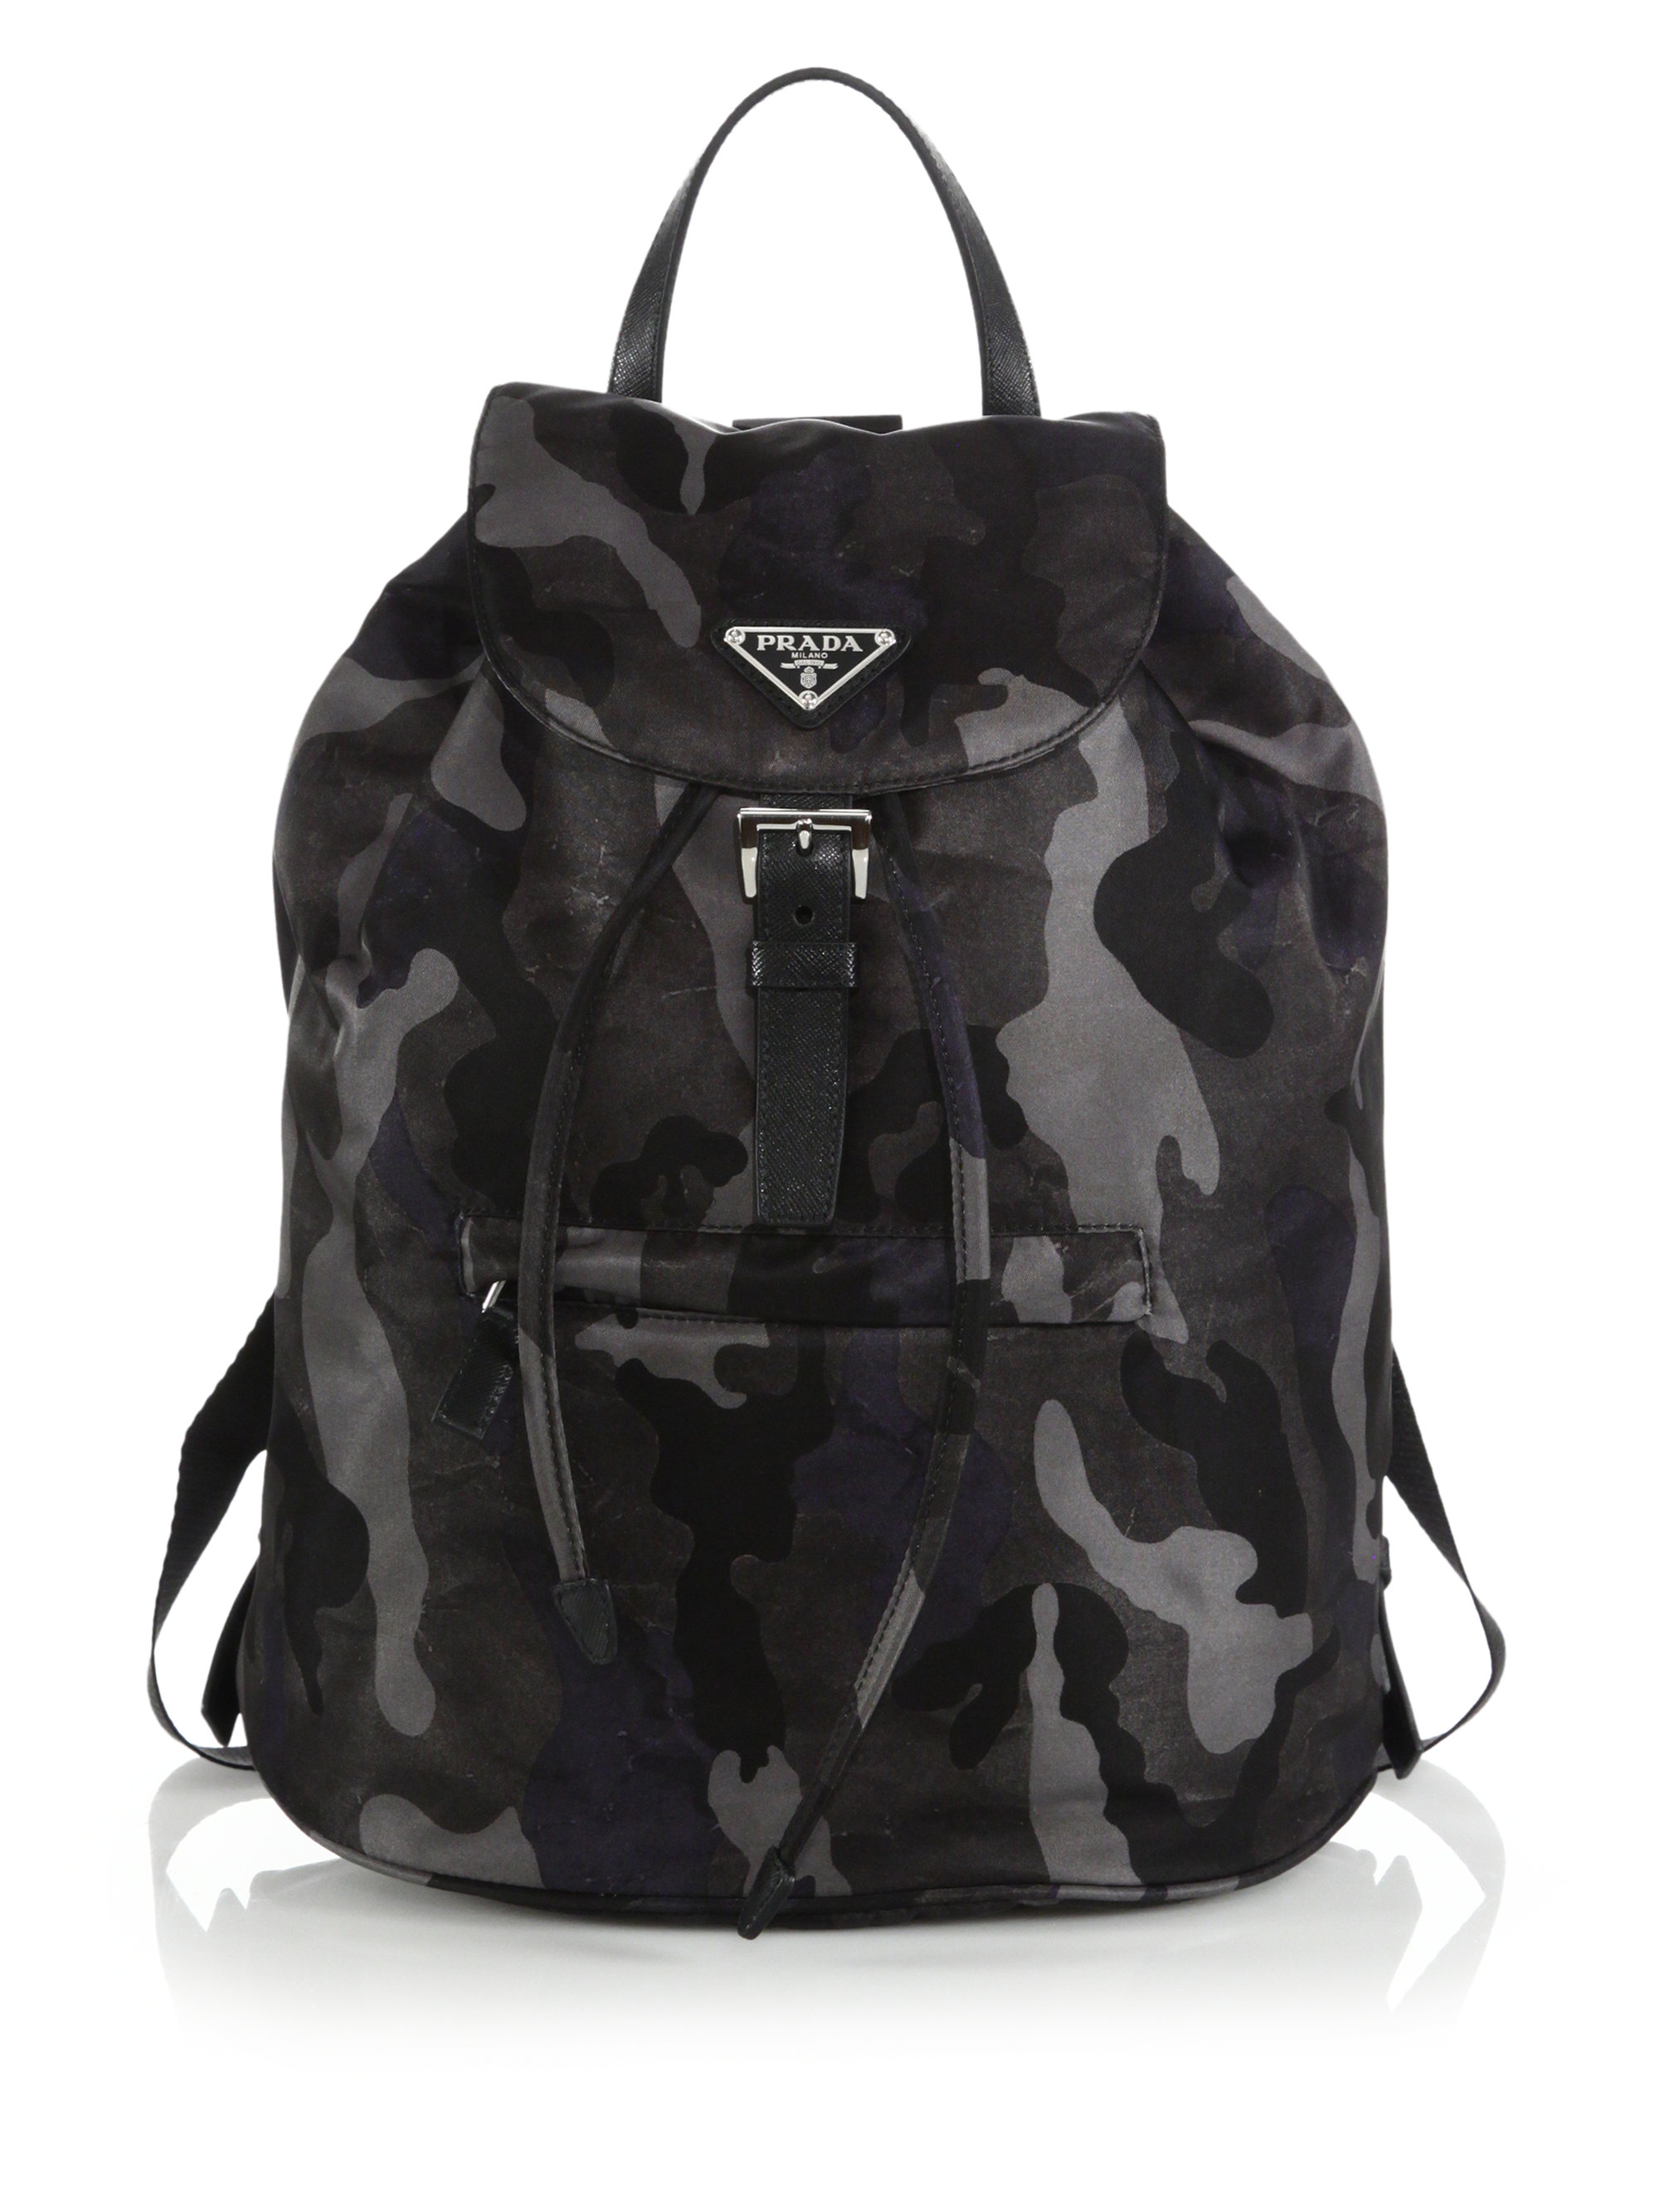 prada messenger bags sale - Prada Tessuto Camouflage Backpack in Black (GREY-BLACK) | Lyst